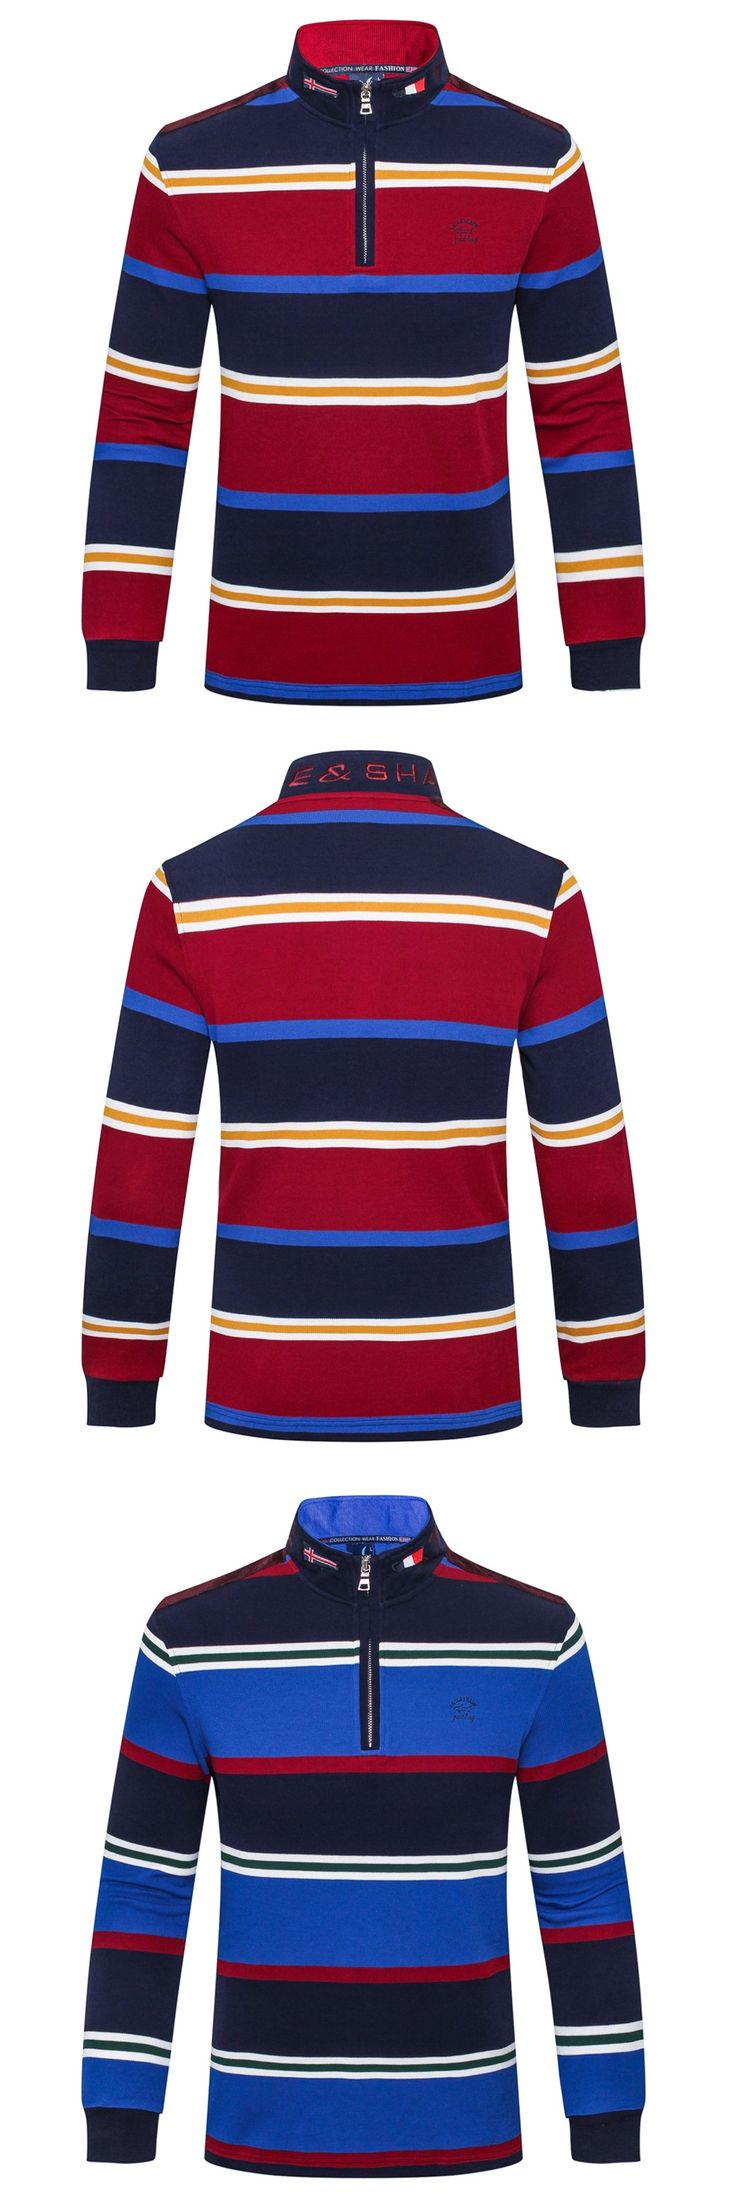 polo shirt masculina volkswagen billionaire polo shirt men Men zipper Stand collar embroidery stripe Long sleeves clothes Cotton